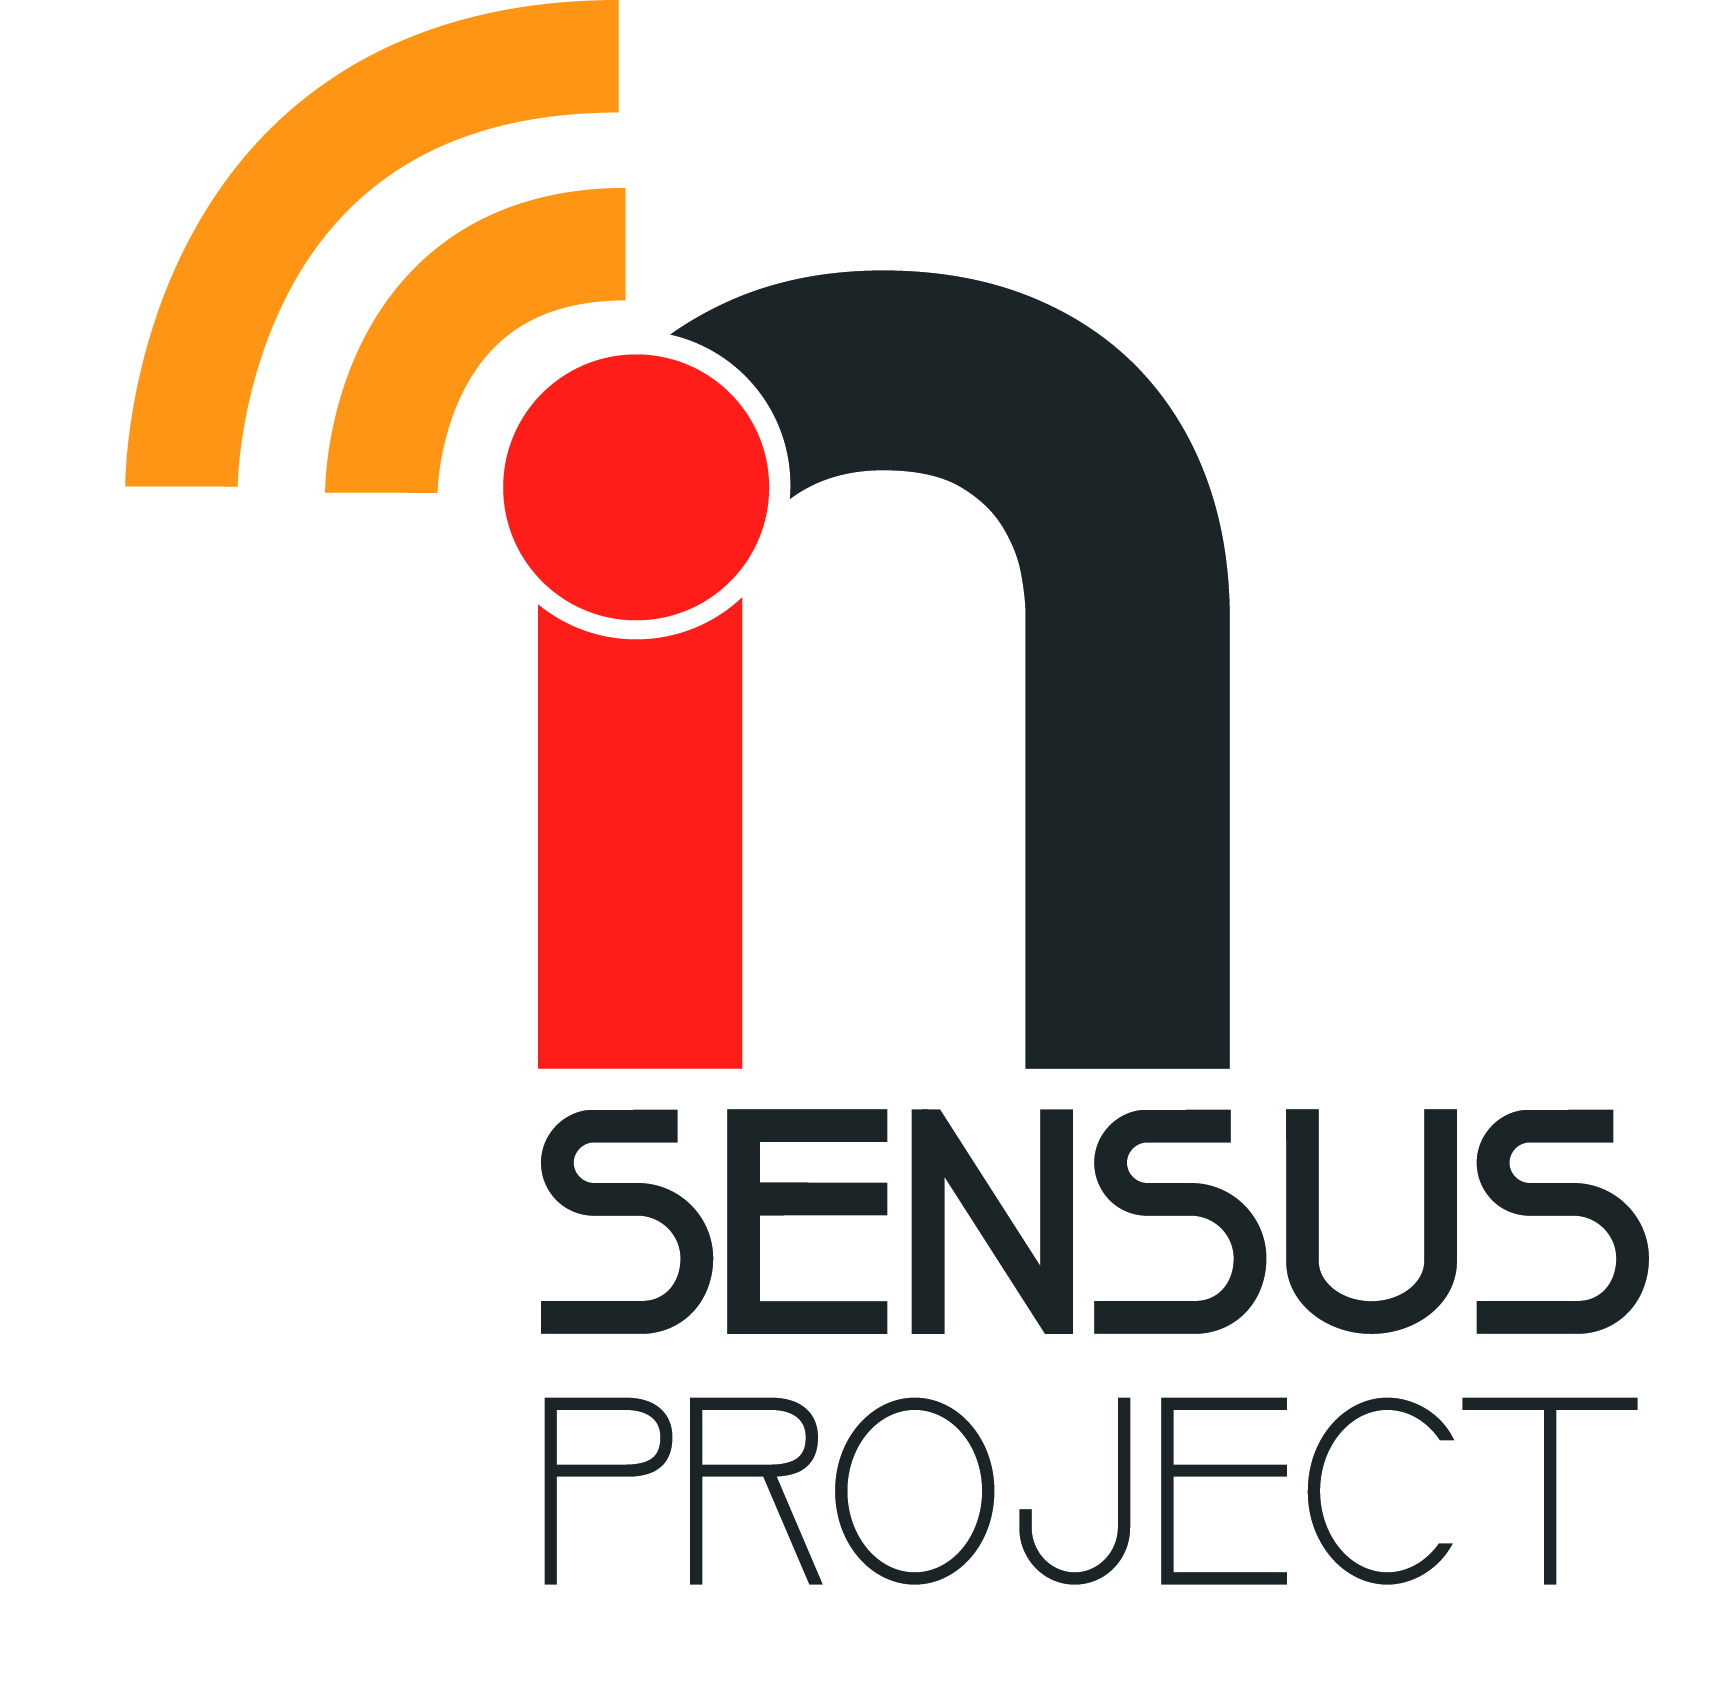 InSensus Project srl logo